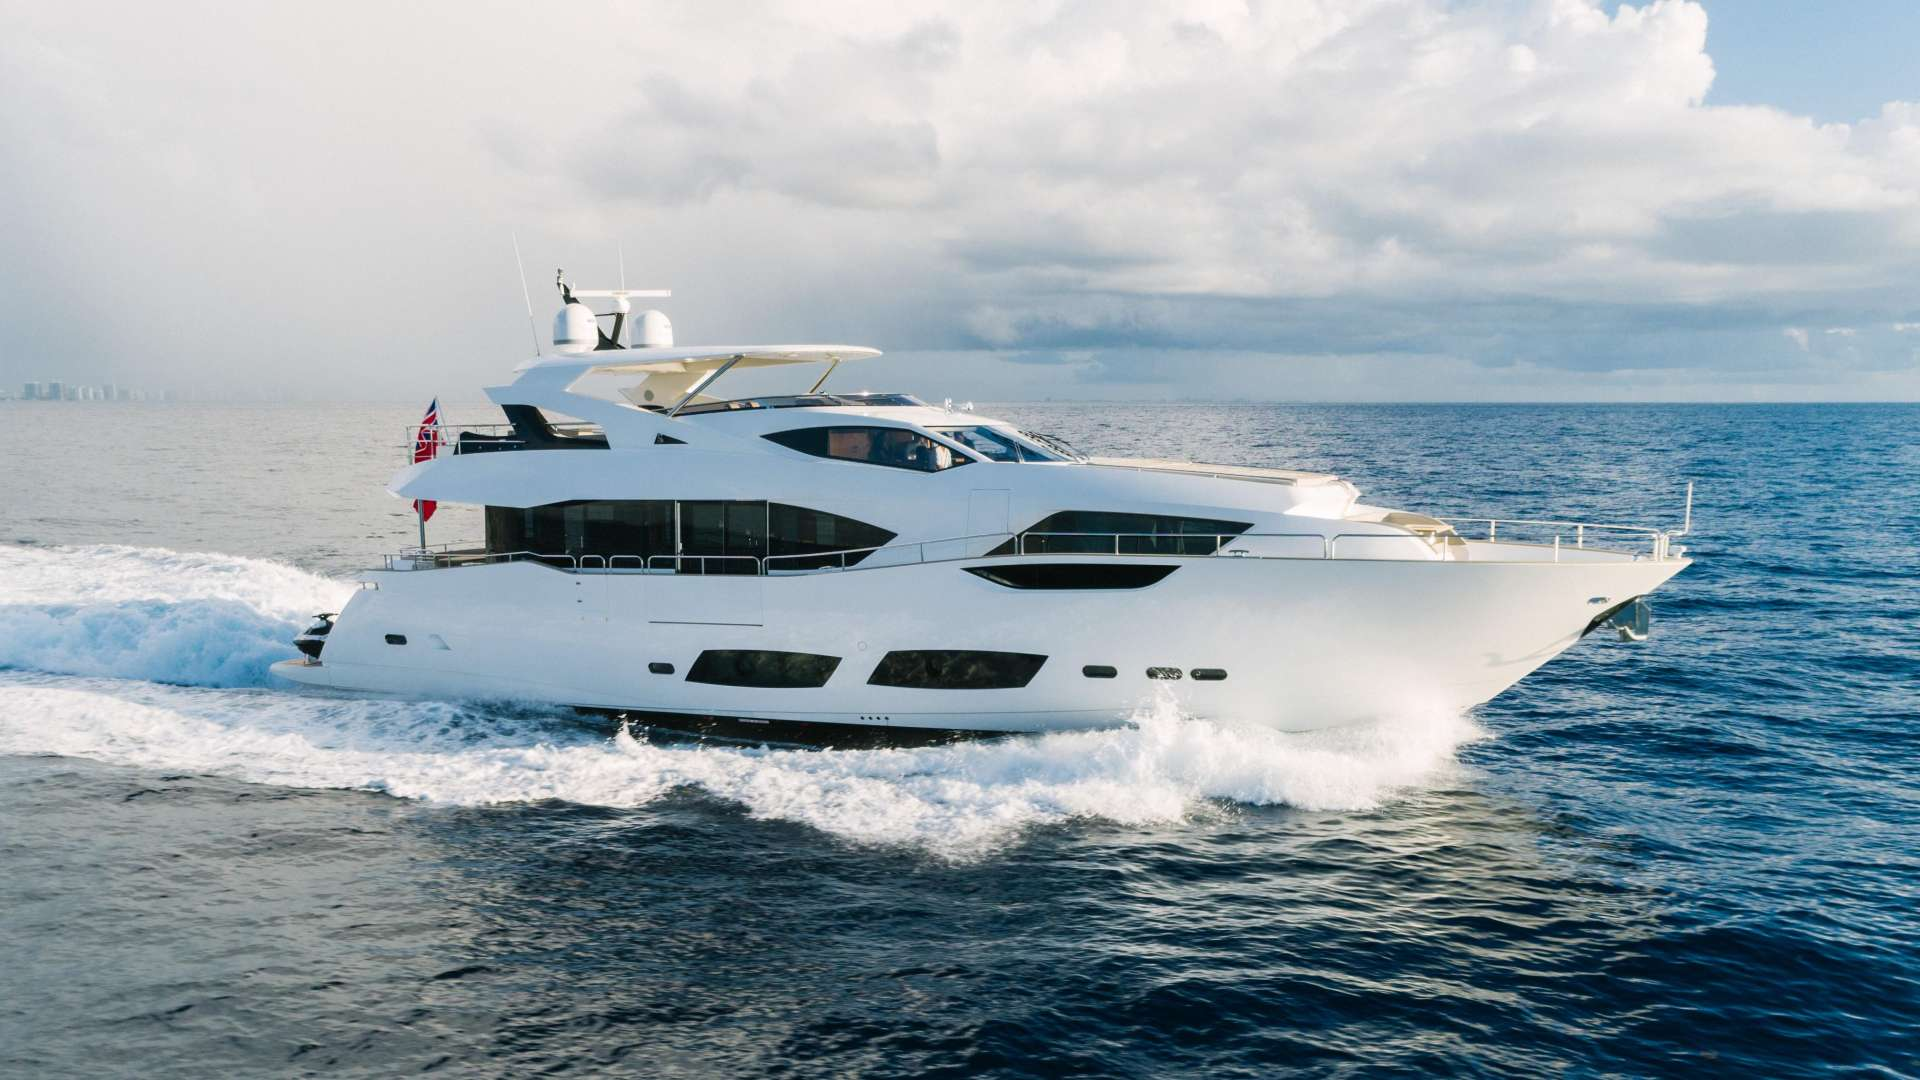 Main image of PERSEVERANCE 3 yacht